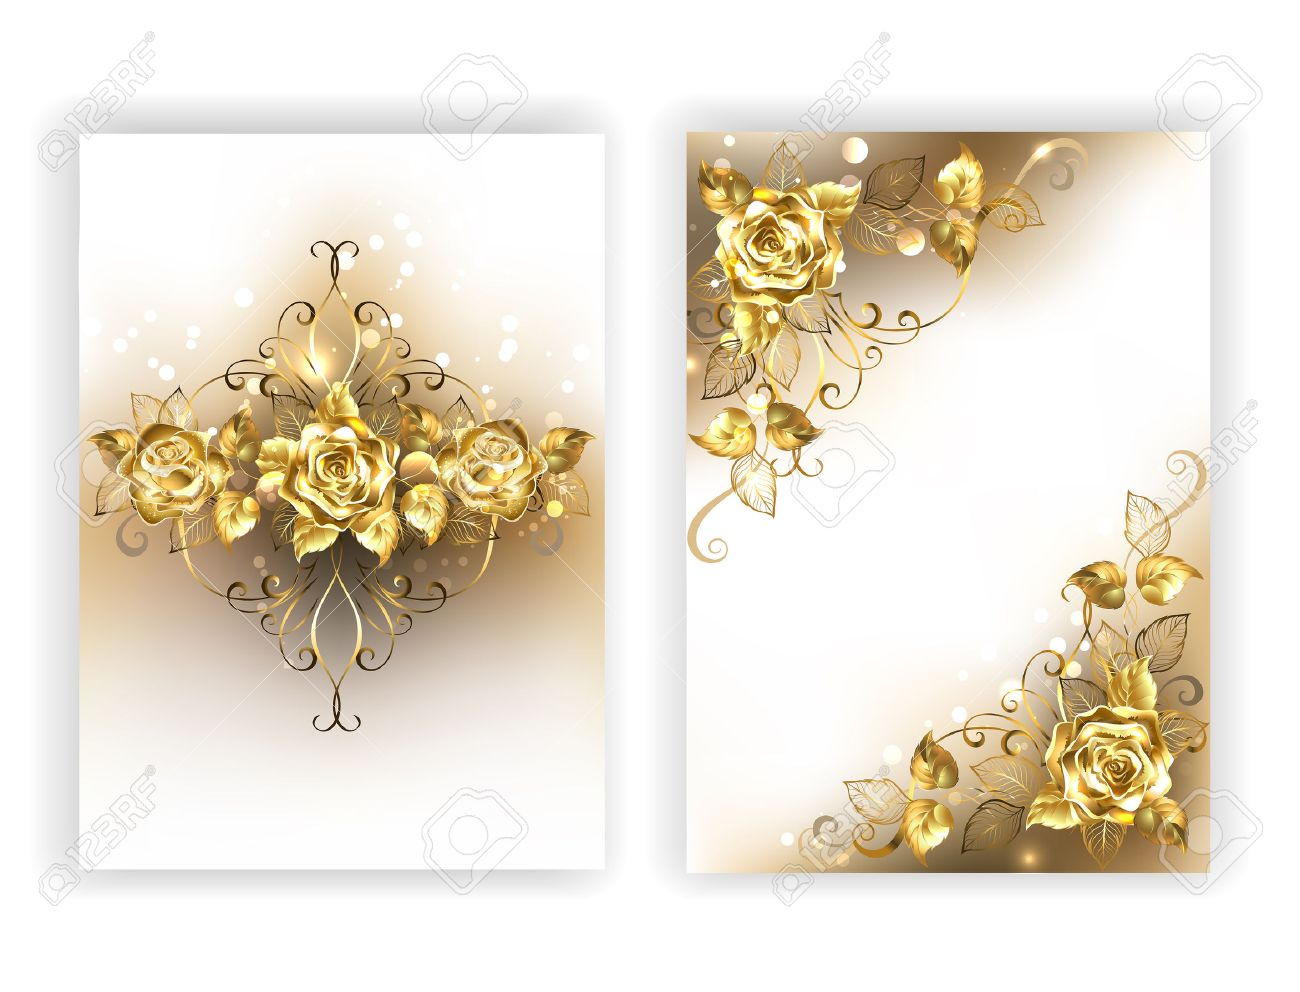 Design Of Glittering Jewelry Gold Roses On A White Background